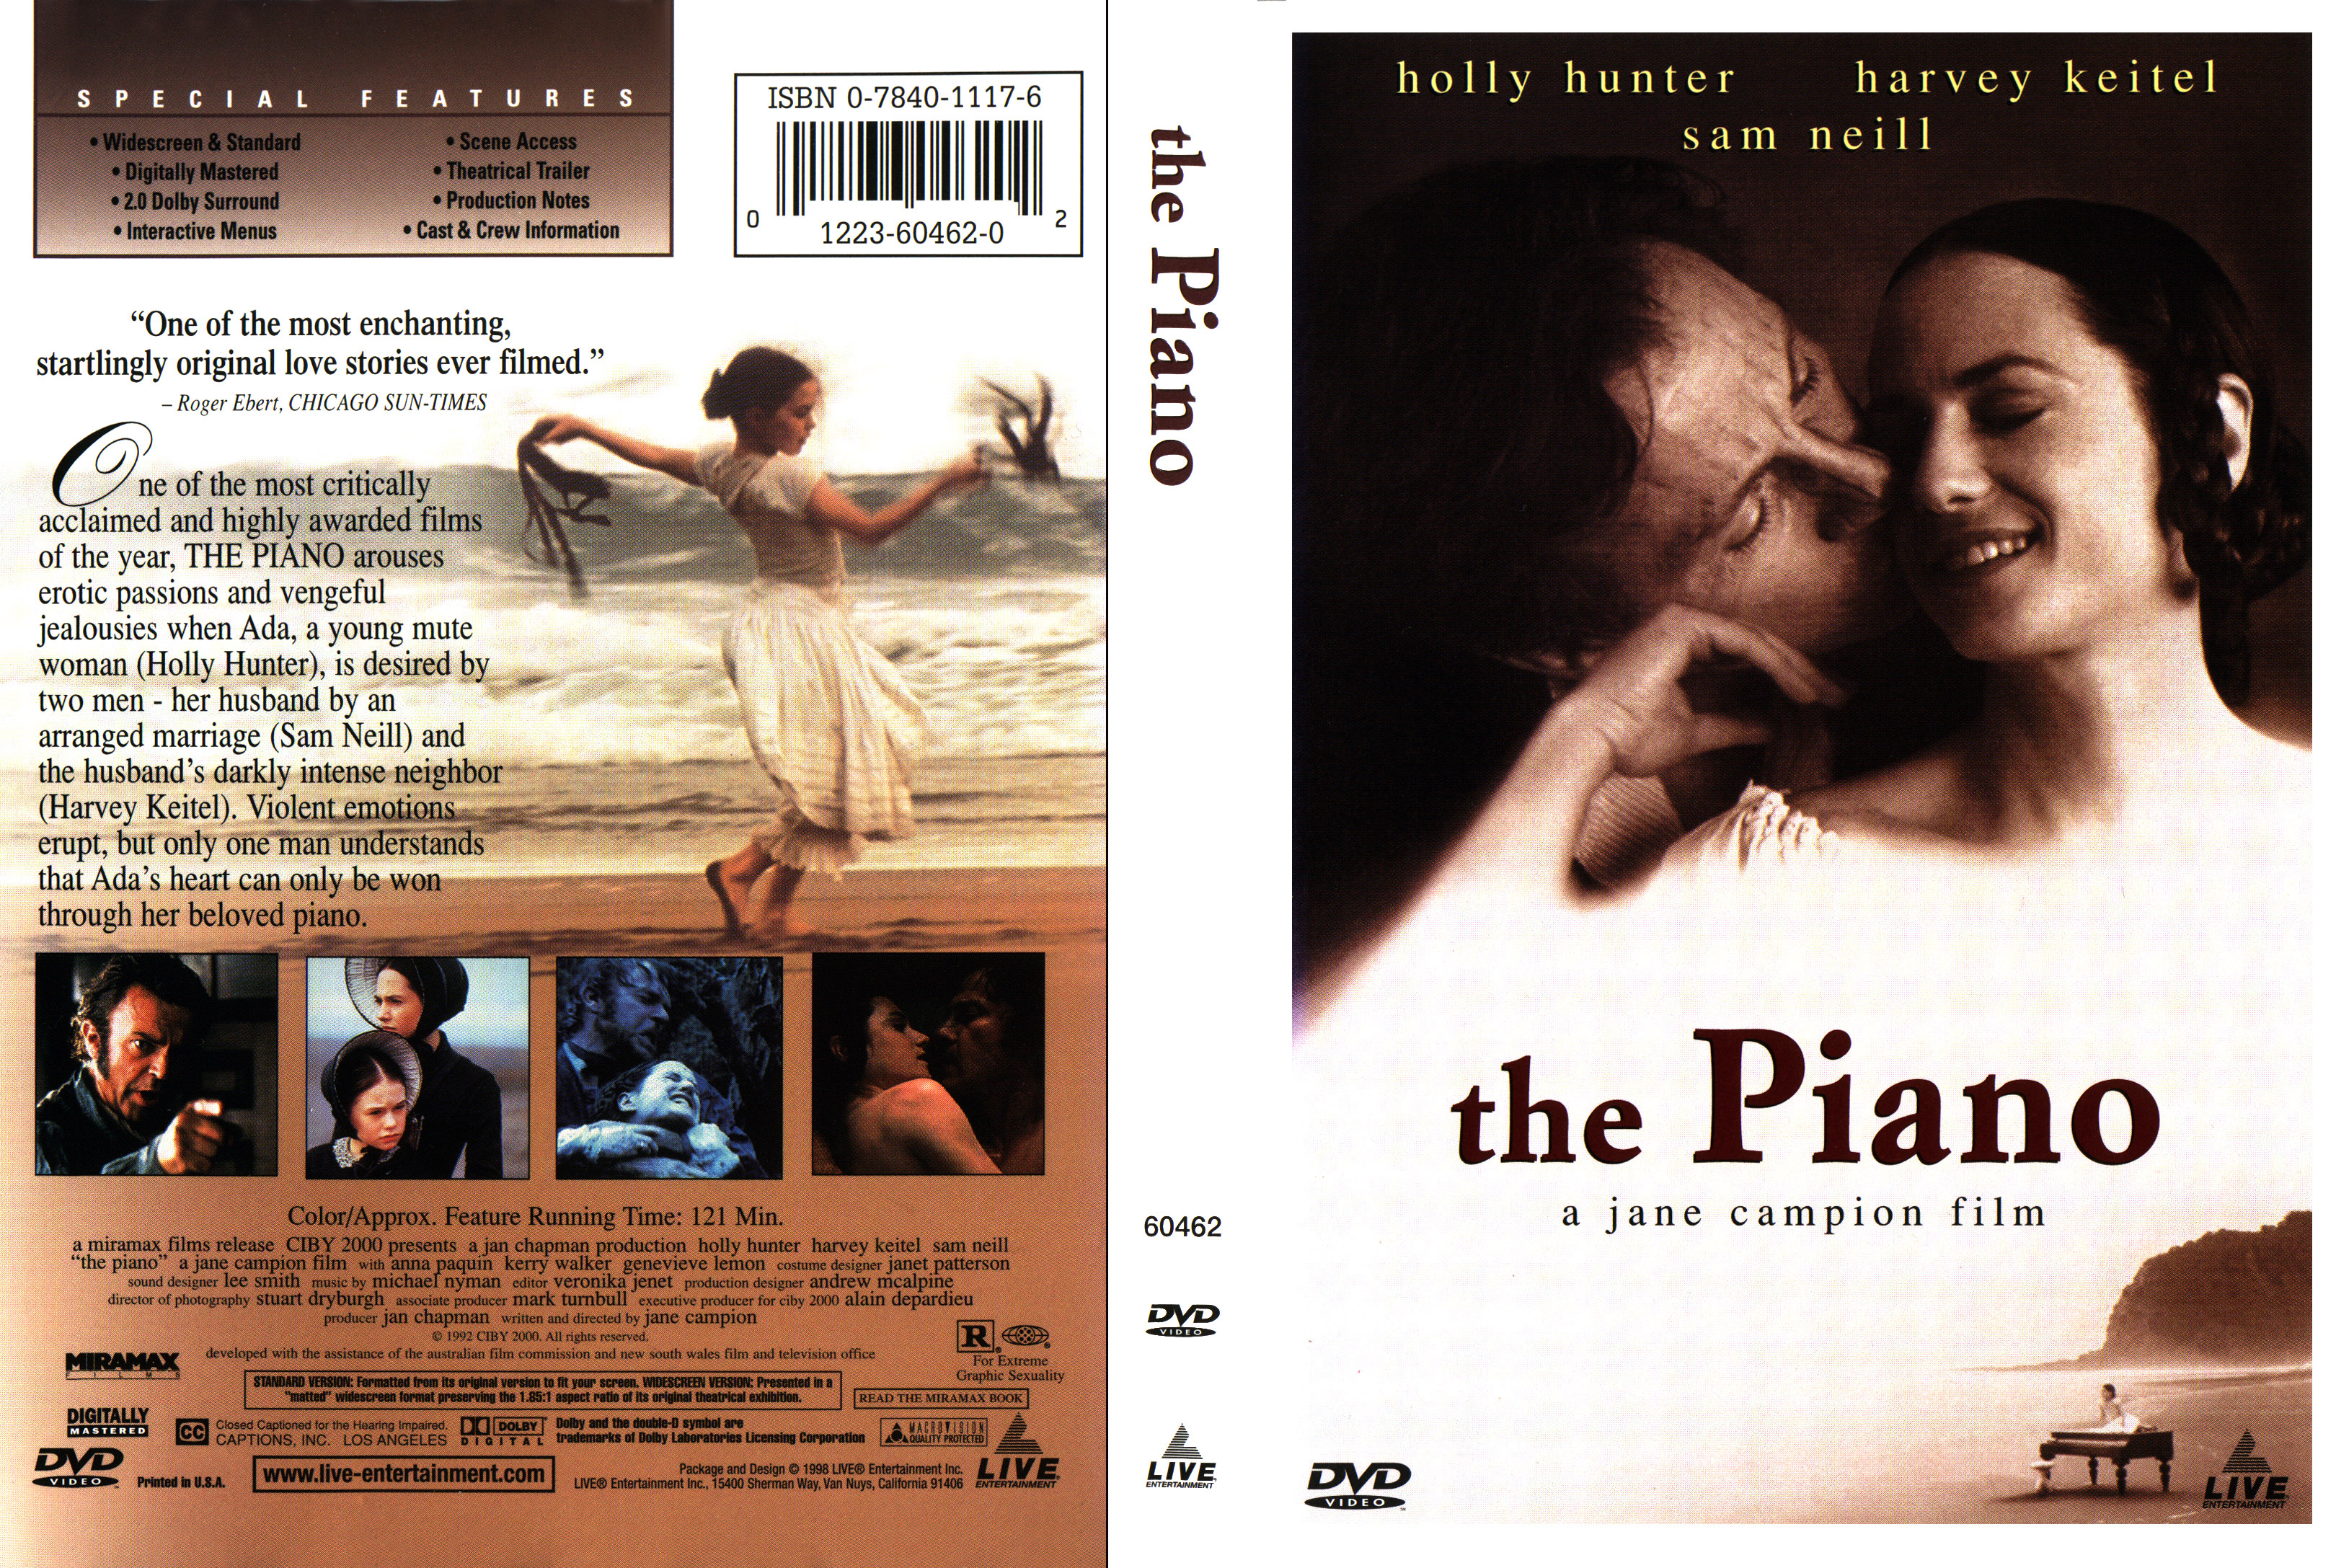 an analysis of the mise en scene elements in the piano a classic film by jane campion